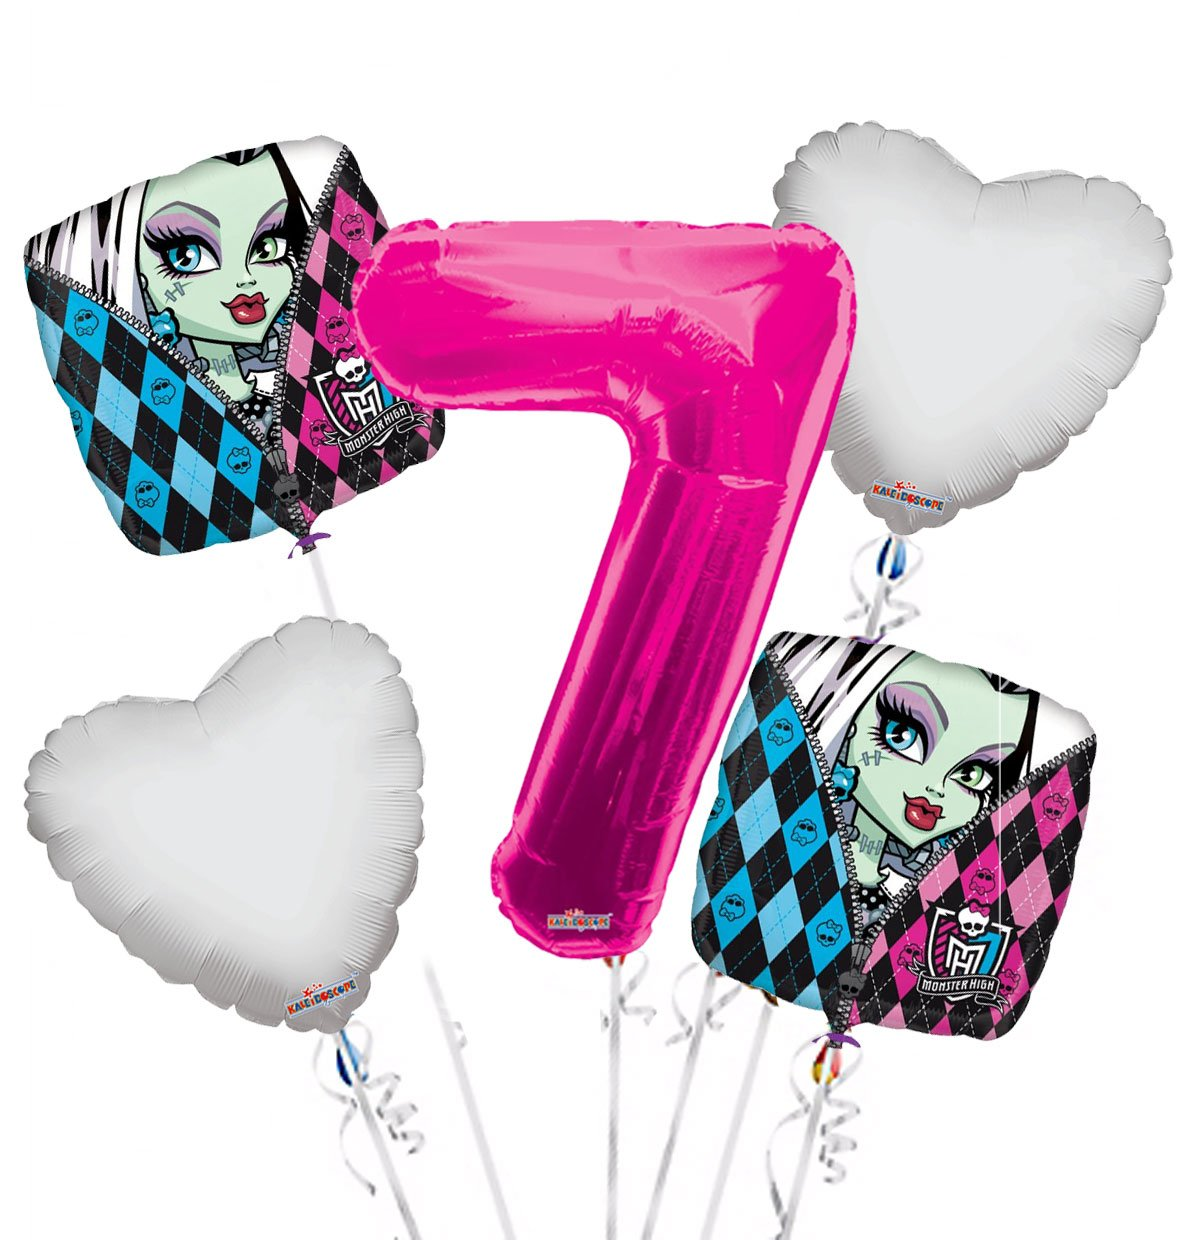 Monster High Balloon Bouquet 7th Birthday 5 pcs - Party Supplies, 1 Giant Number 7 Balloon, 34in By Viva Party